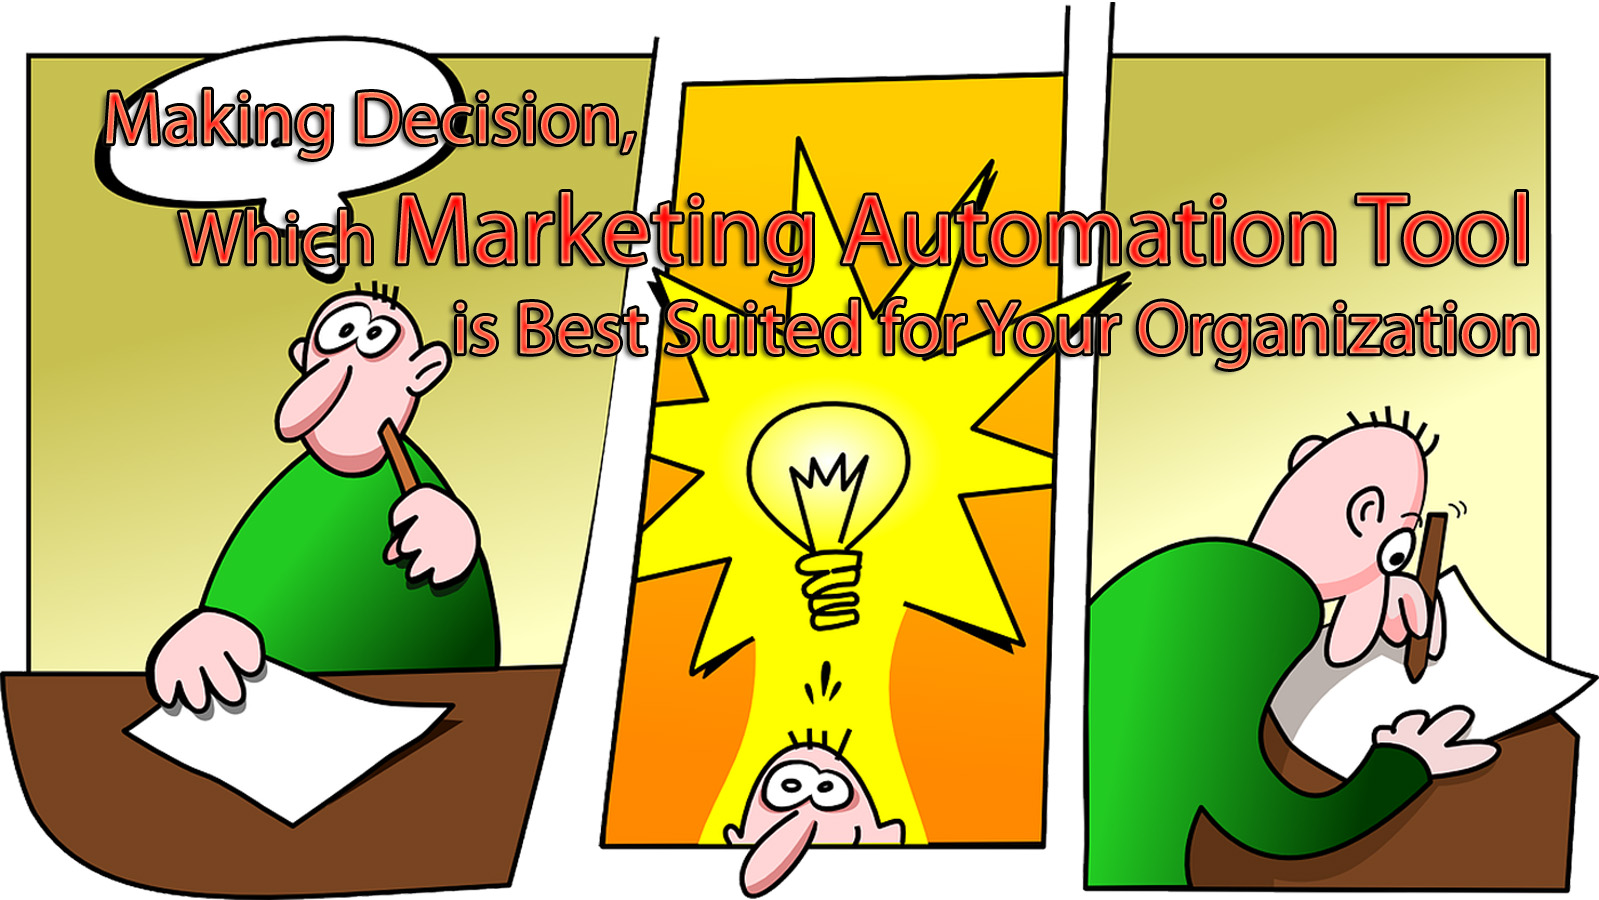 Making Decision, Which Marketing Automation Tool is Best Suited for Your Organization